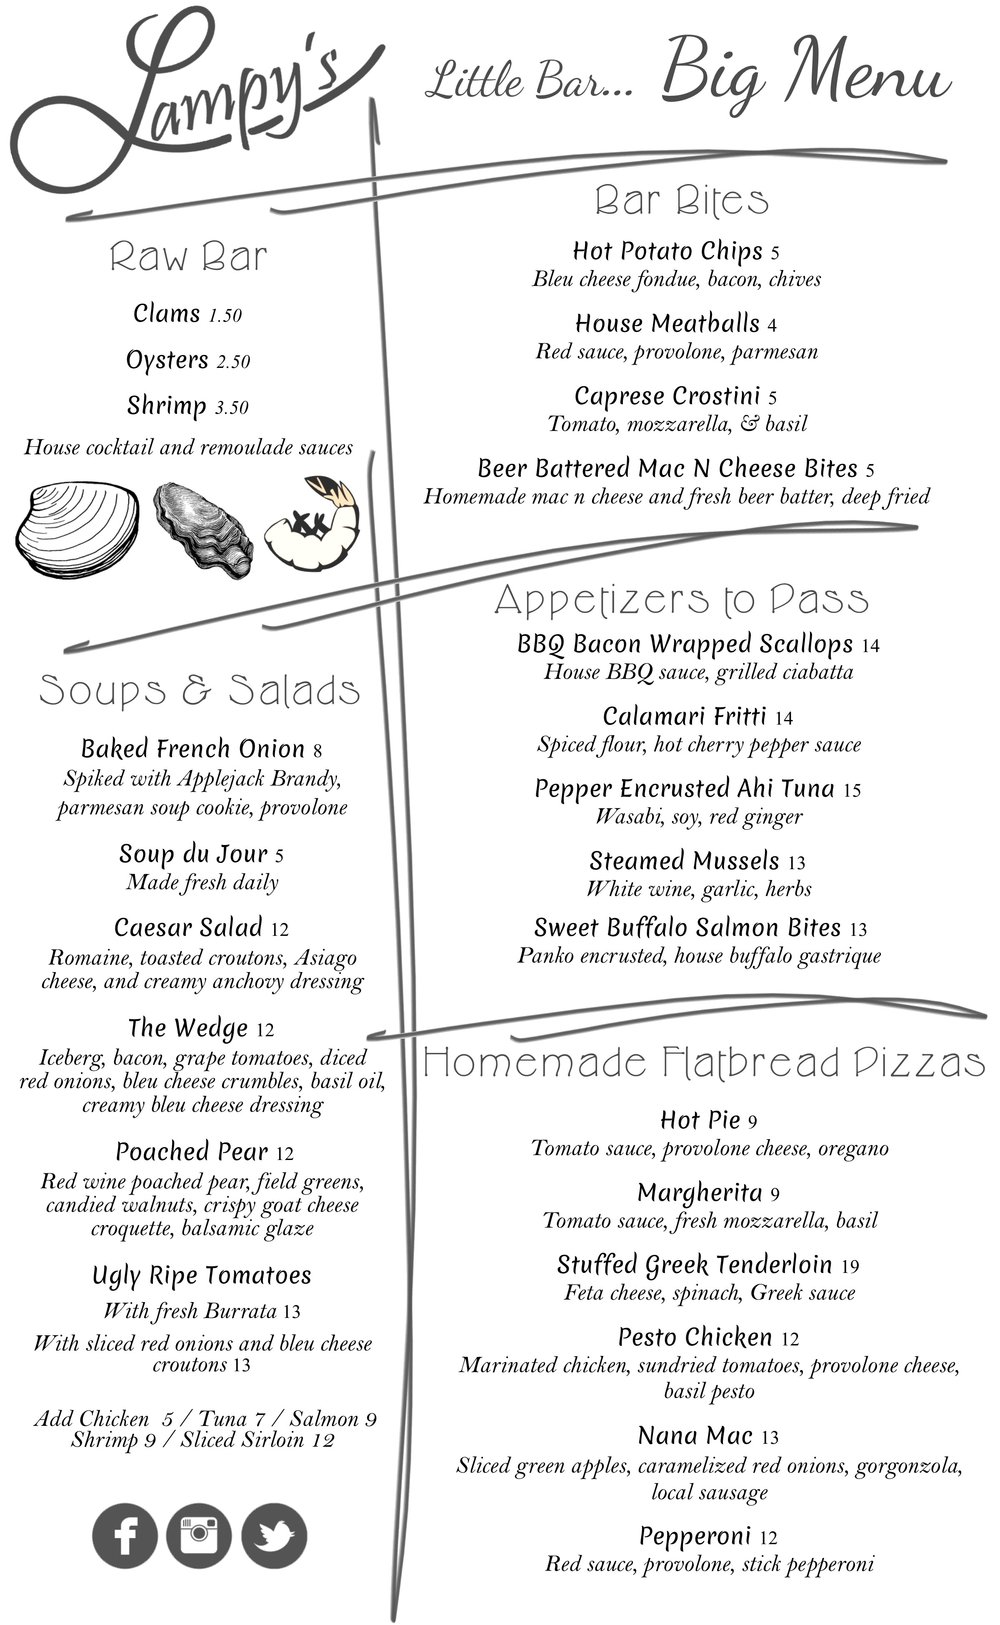 Lampys bar menu summer 2018 pg1.jpg